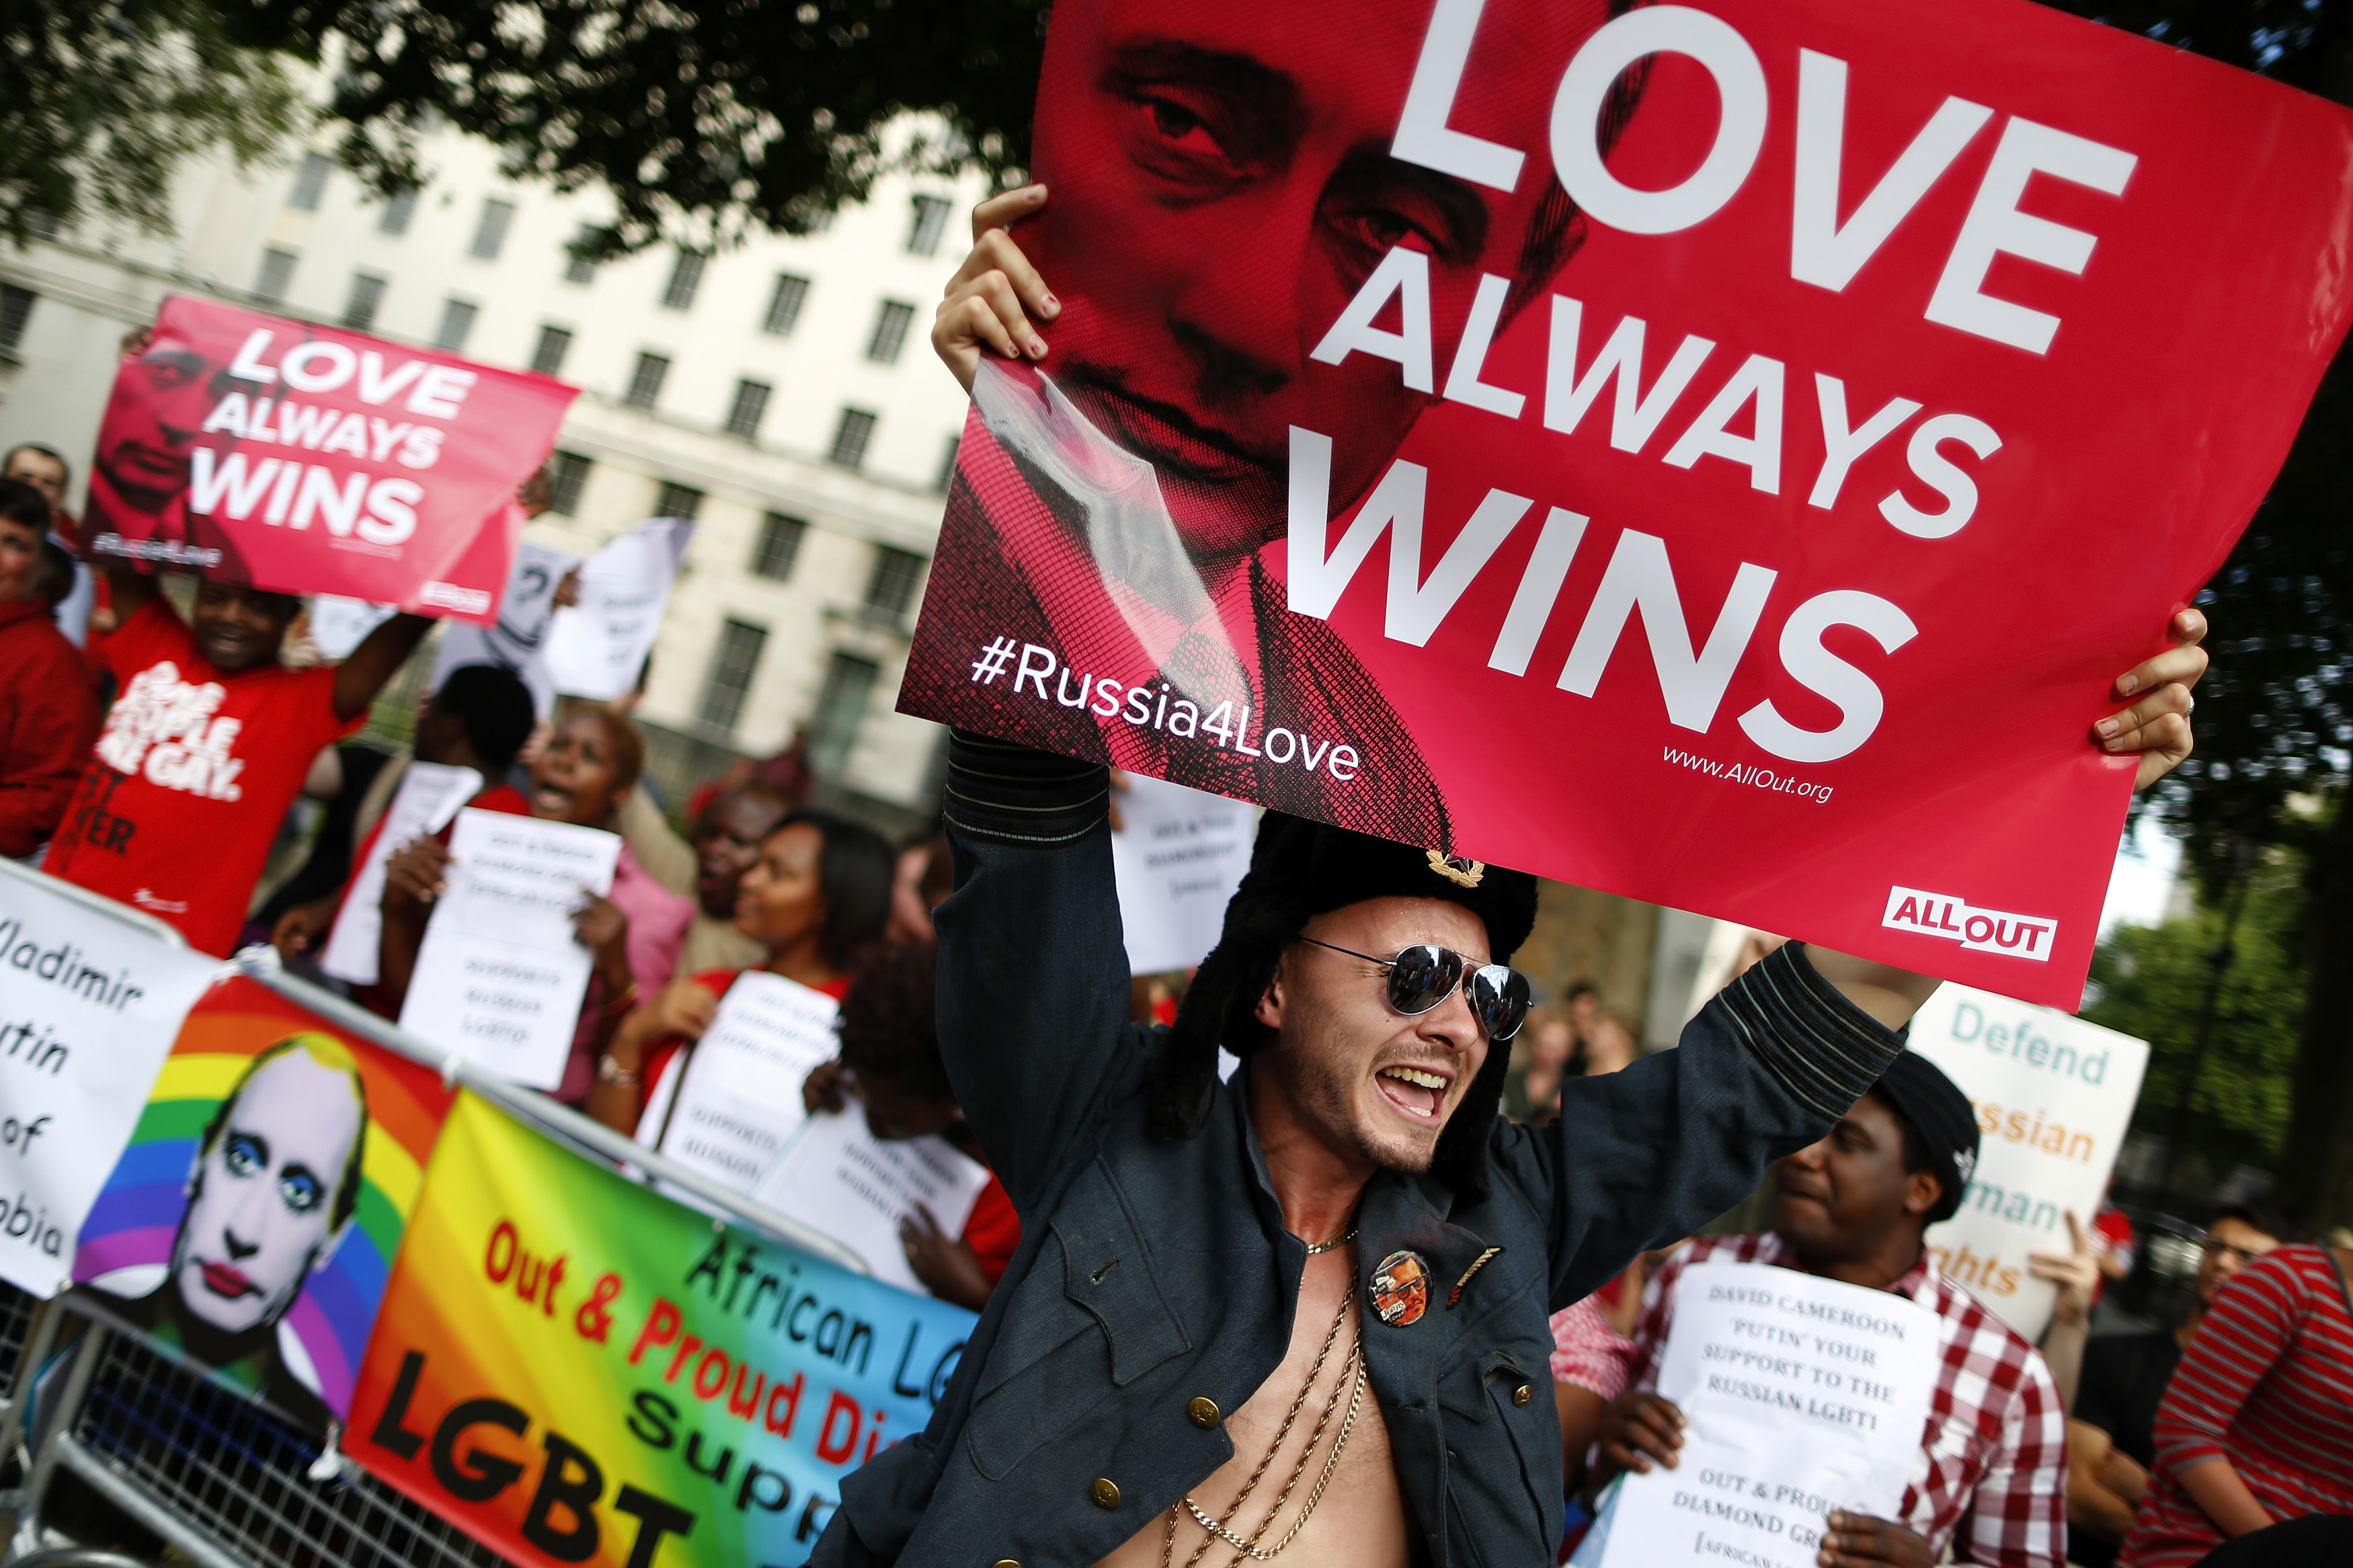 A protester holds up a placard during a demonstration against Russia's anti-gay legislation opposite Downing Street in London